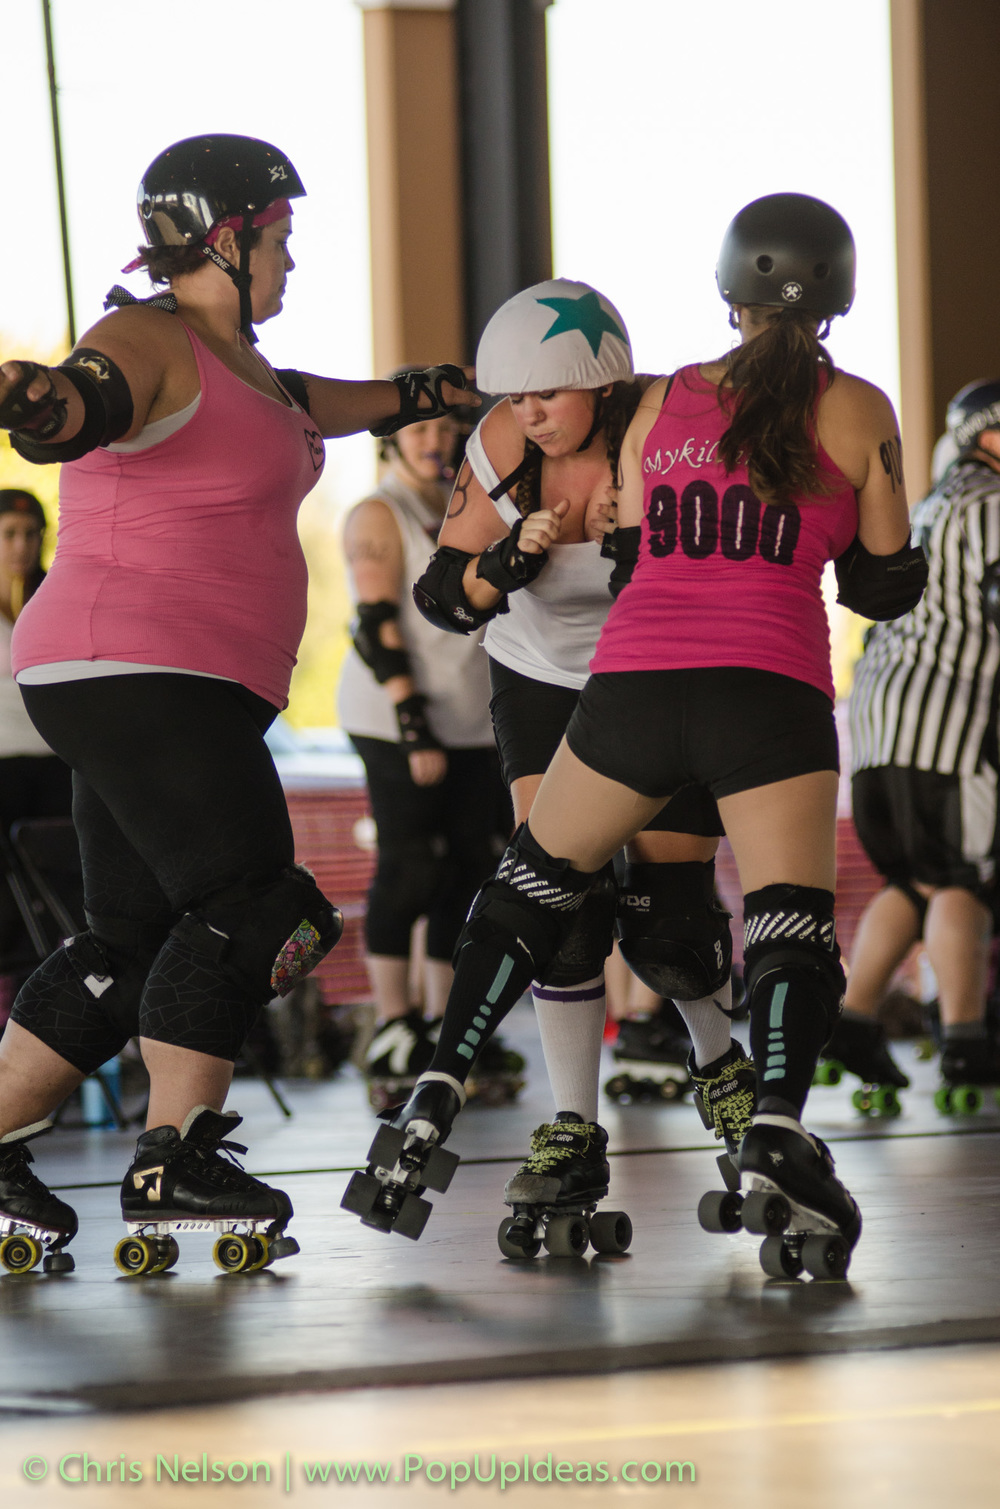 PopUpIdeas - Chris Nelson - Roller Derby -  (2 of 18).jpg